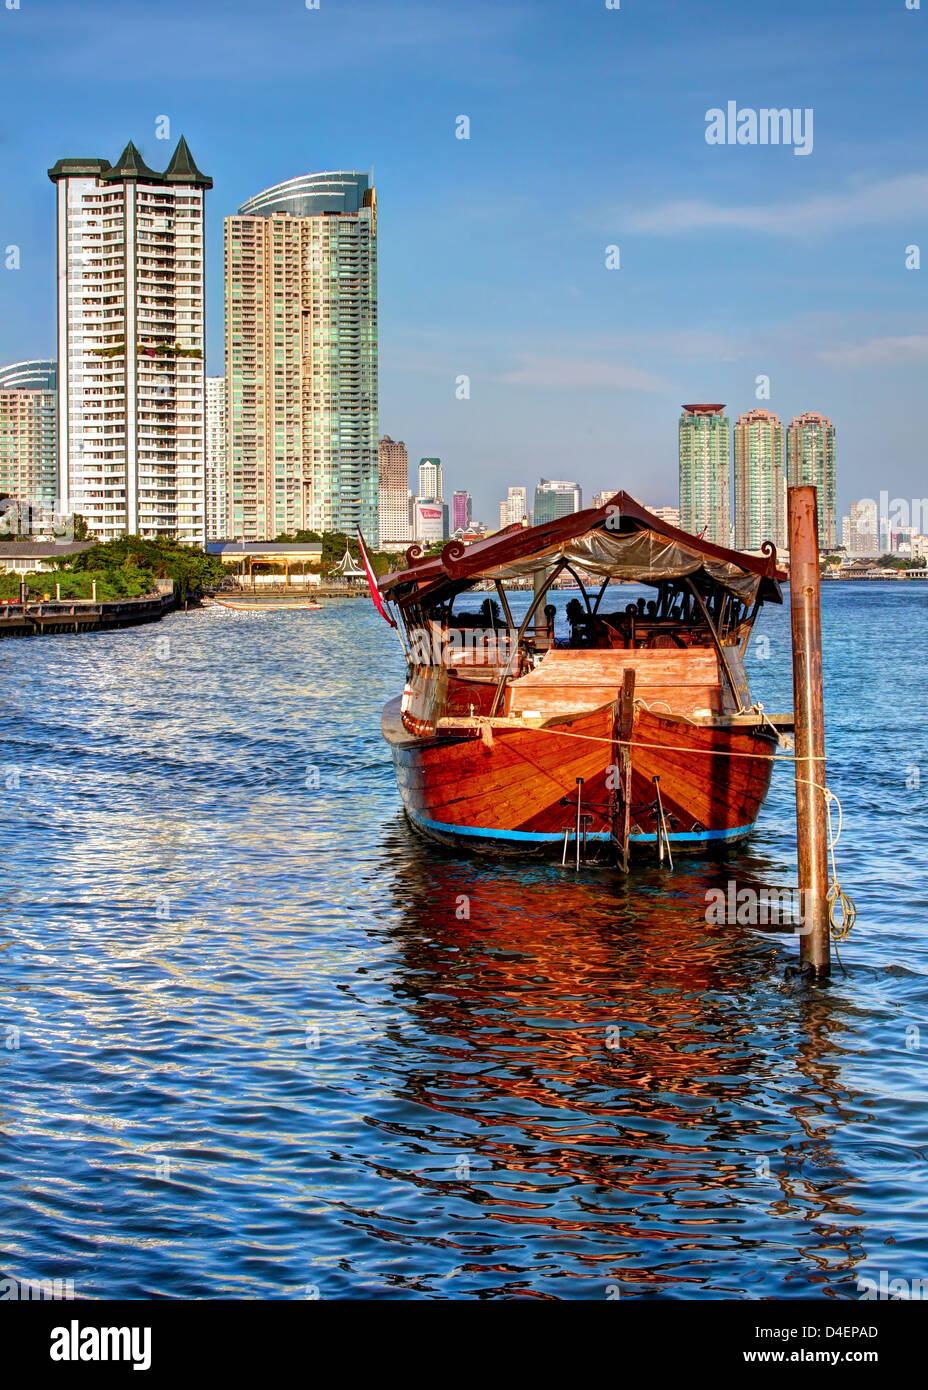 Reflection of the old against the backdrop of the new / Rice Barge on the Chao Phraya River / Bangkok - Stock Image